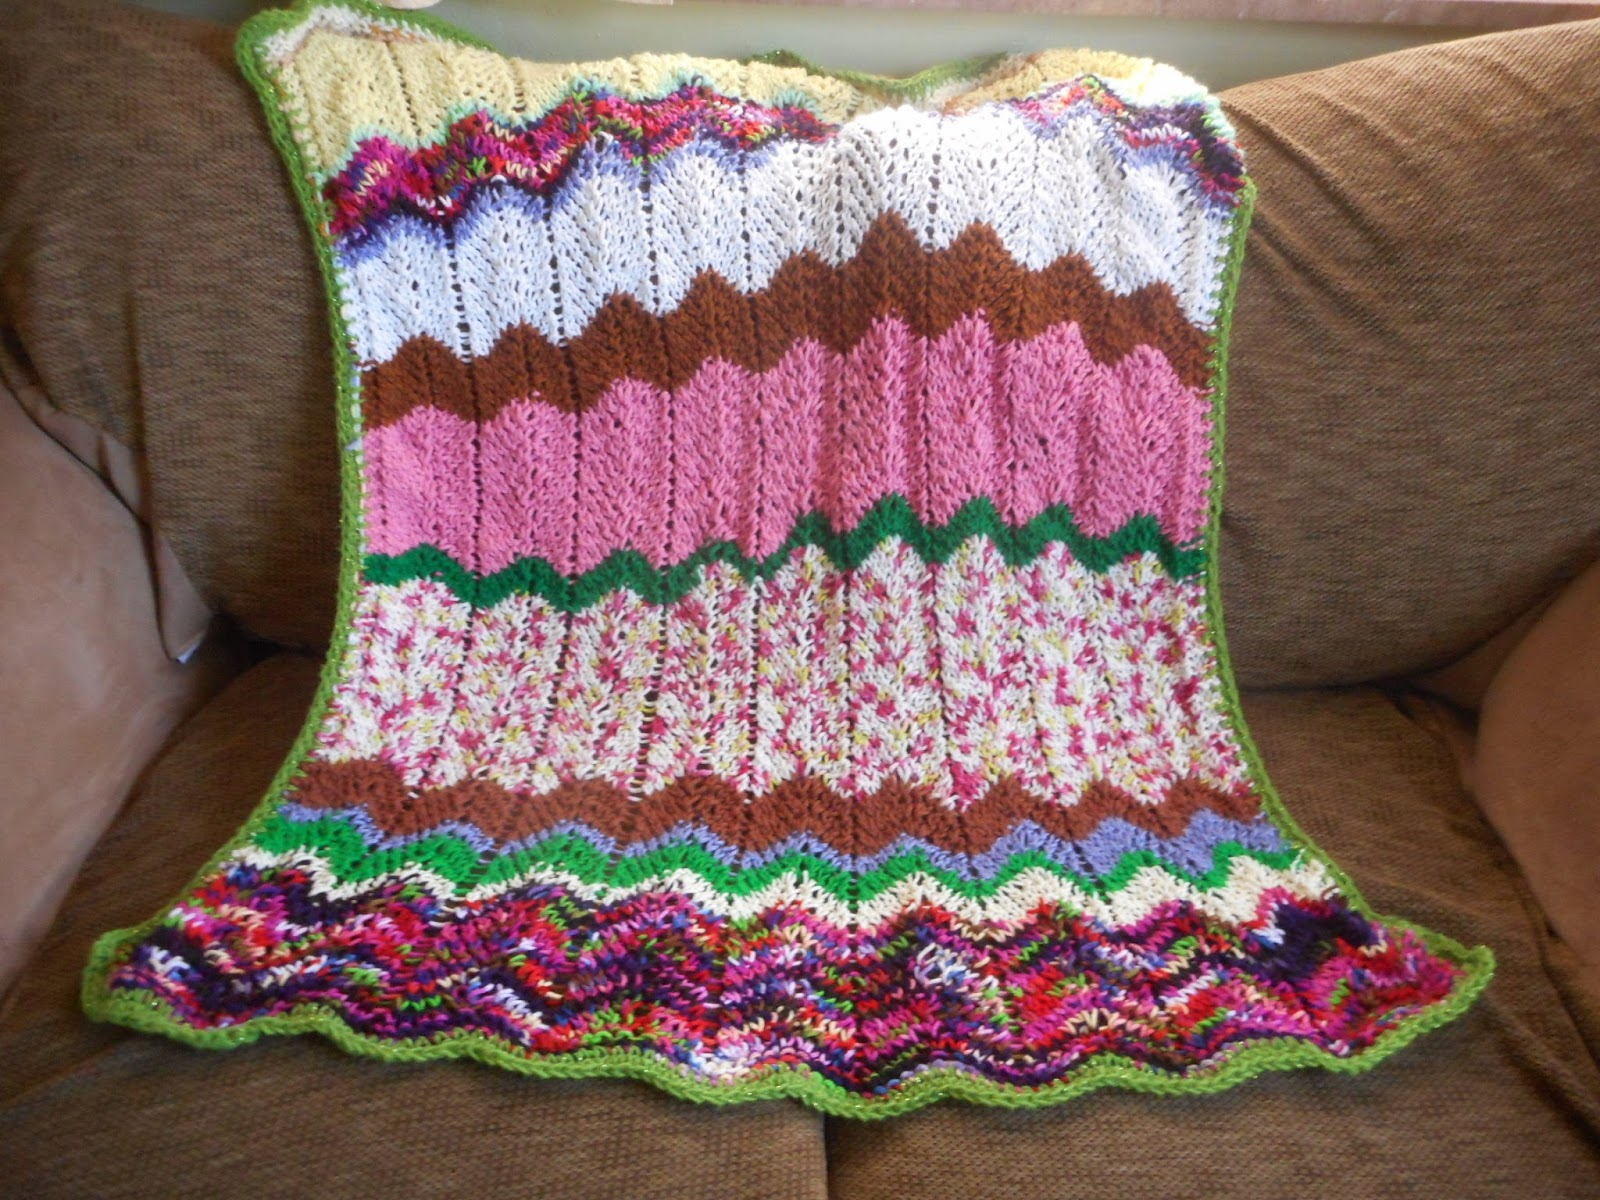 Knitting Nelly\'s Yarn Cache: Chevron stripe knit blanket